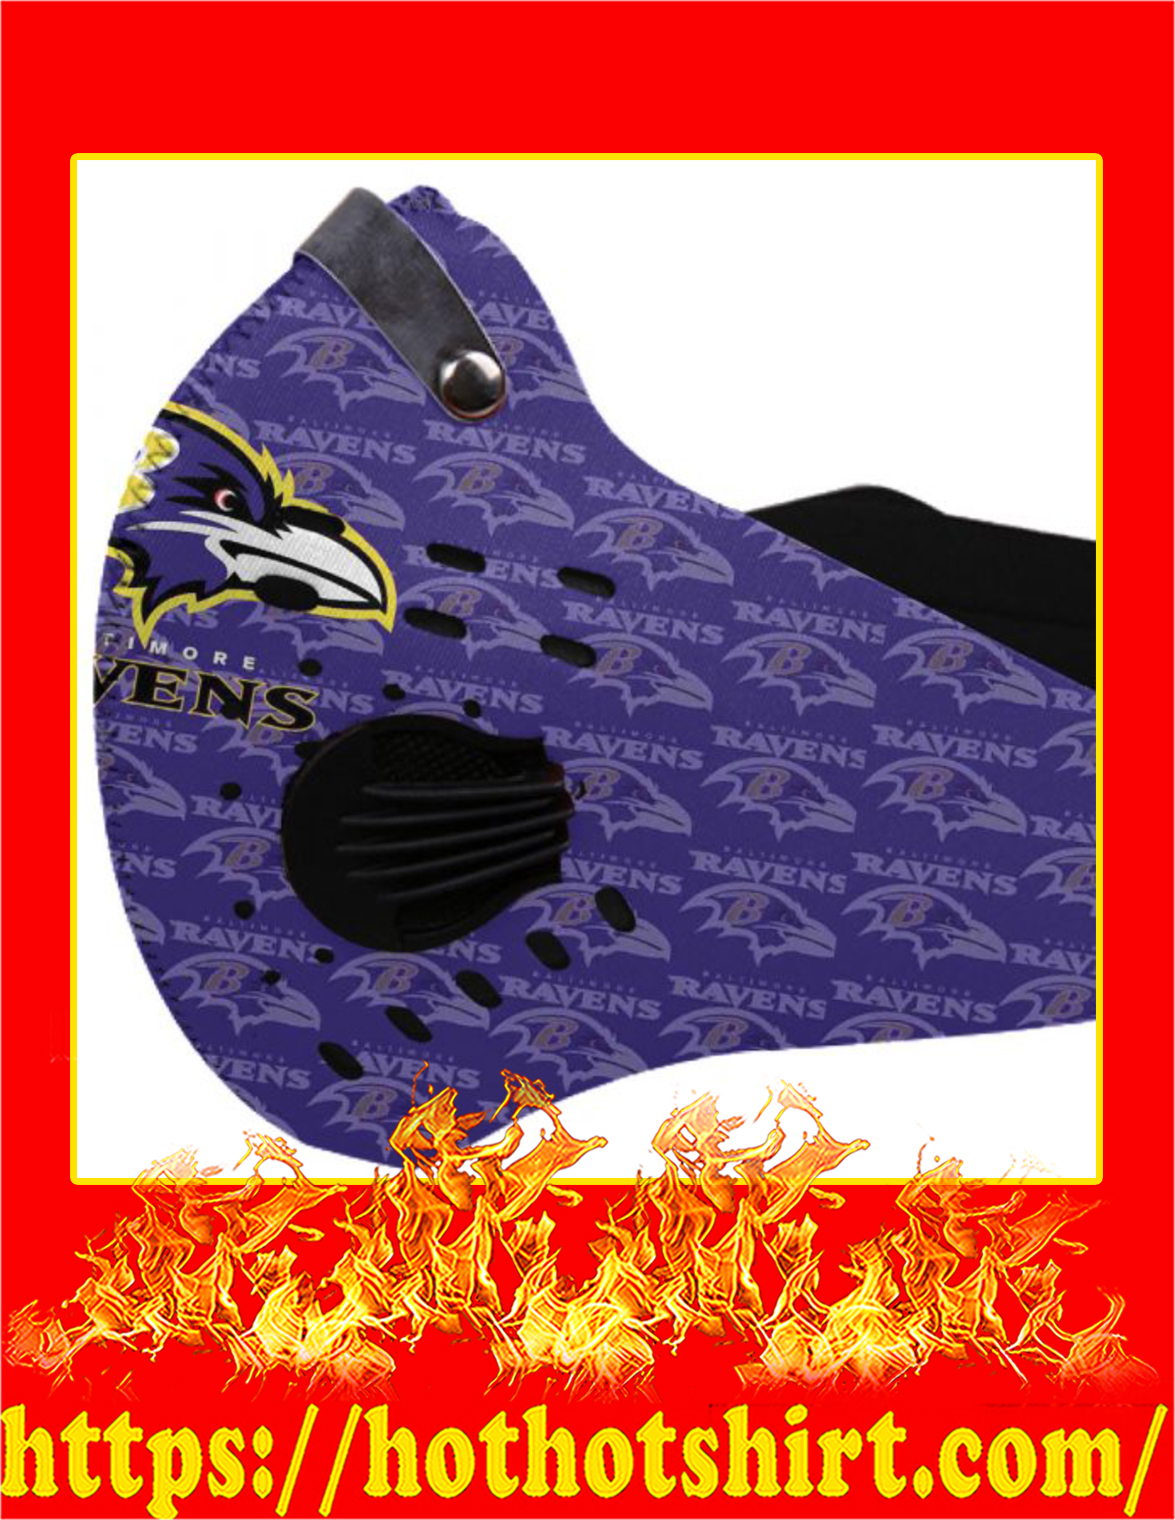 Baltimore ravens filter face mask - Pic 1